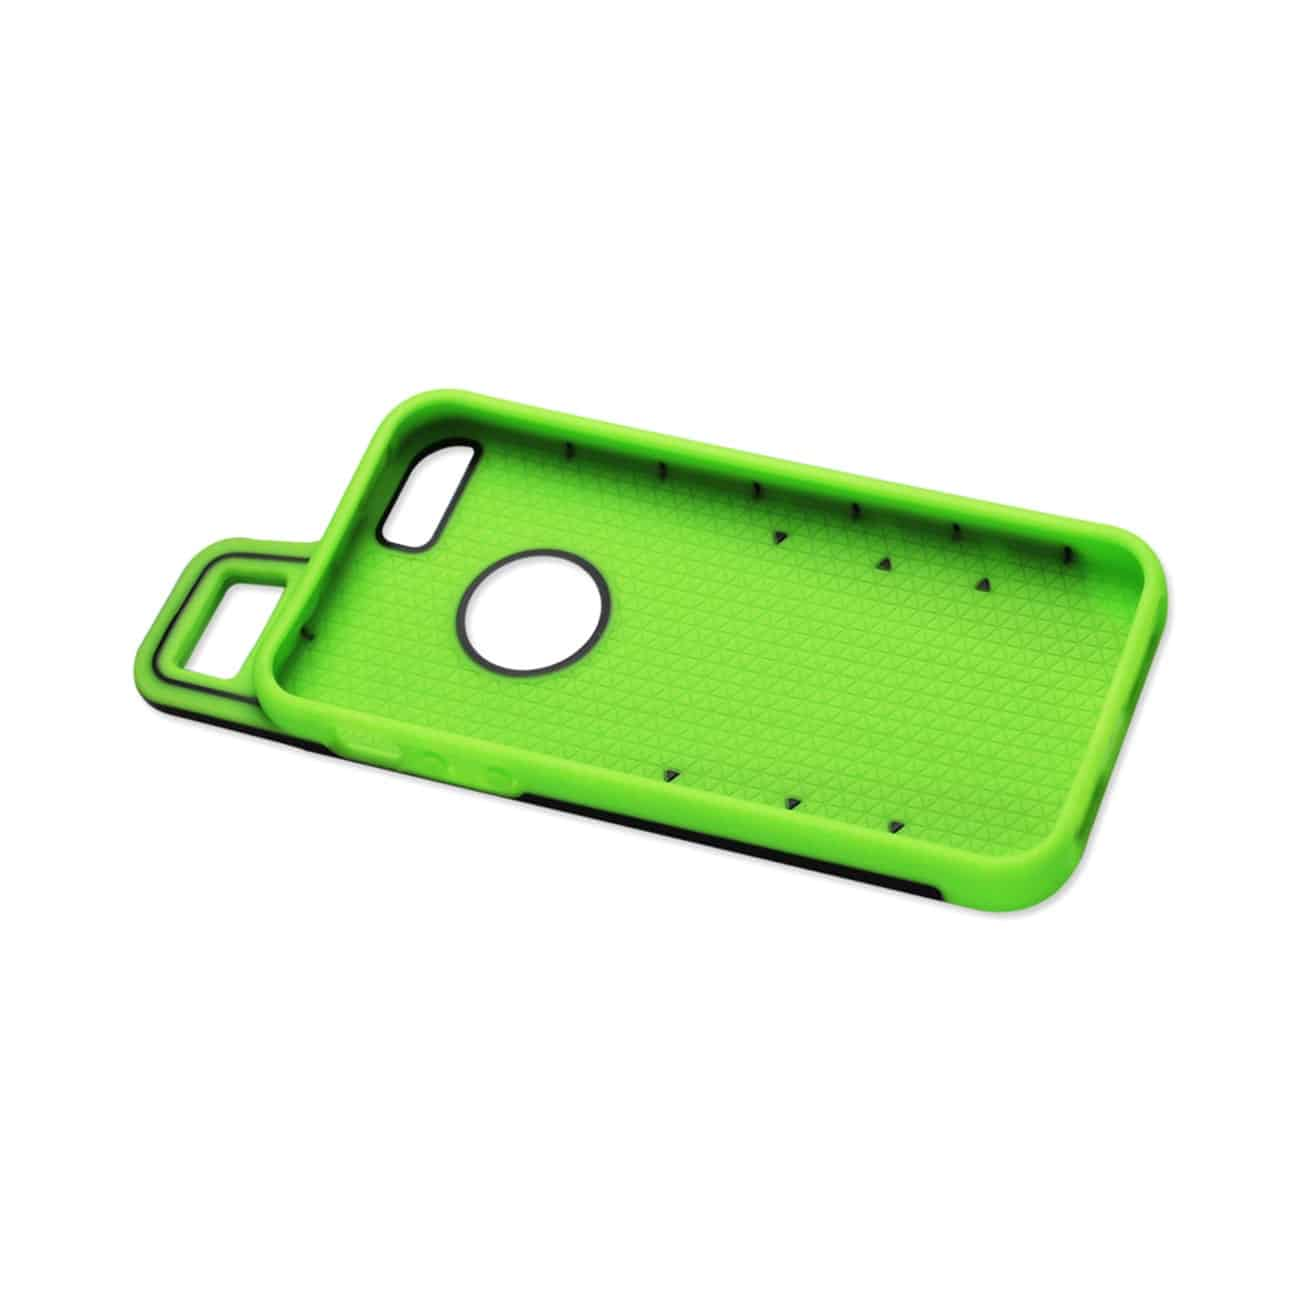 IPHONE 5/5S/SE DROPPROOF WORKOUT HYBRID CASE WITH HOOK IN BLACK GREEN